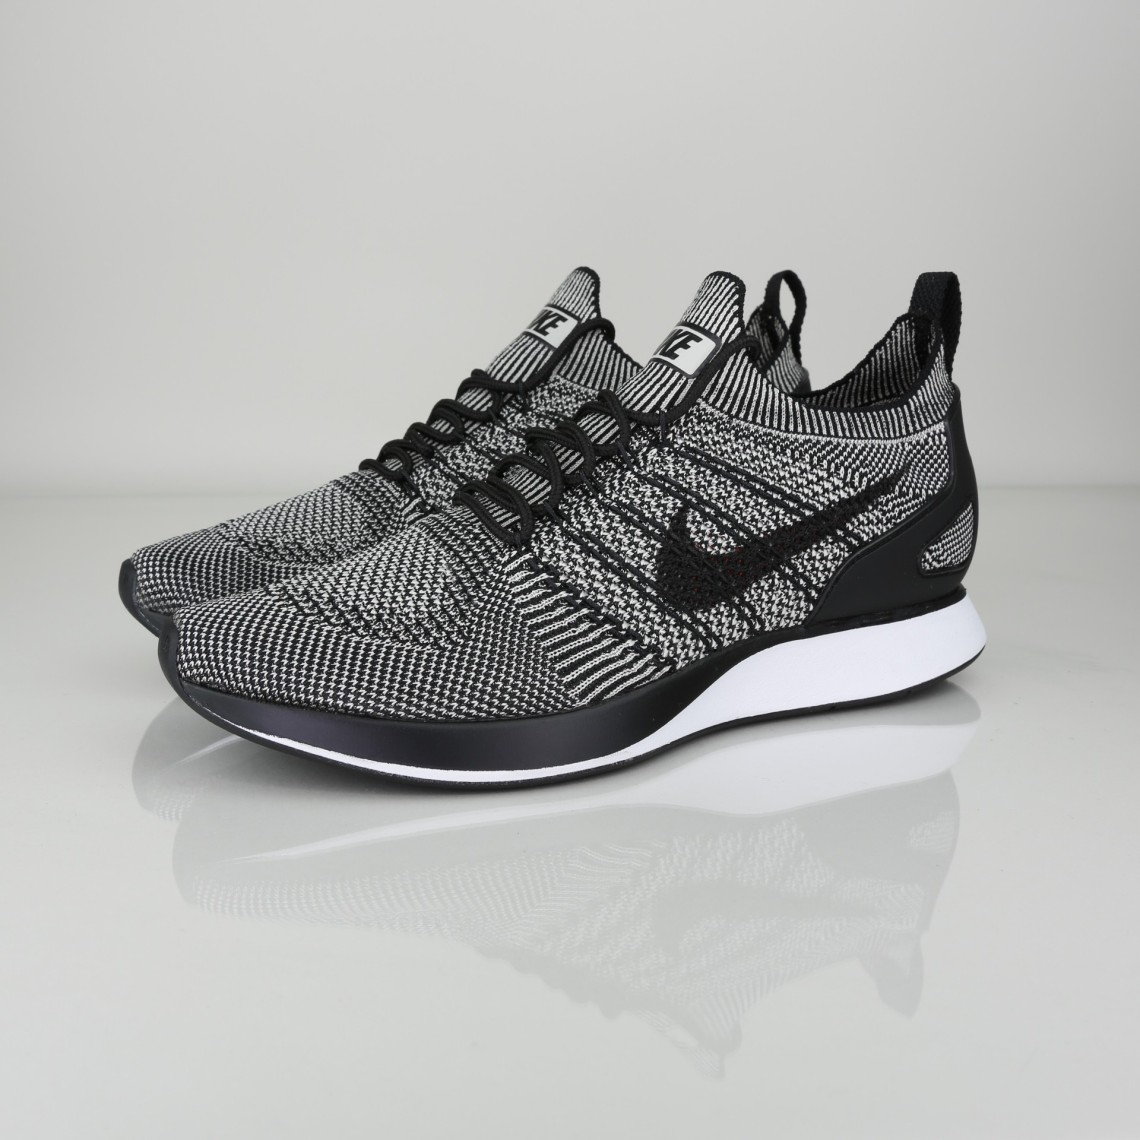 Nike Chaussures Air Zoom Mariah Flyknit Racer - 918264-003